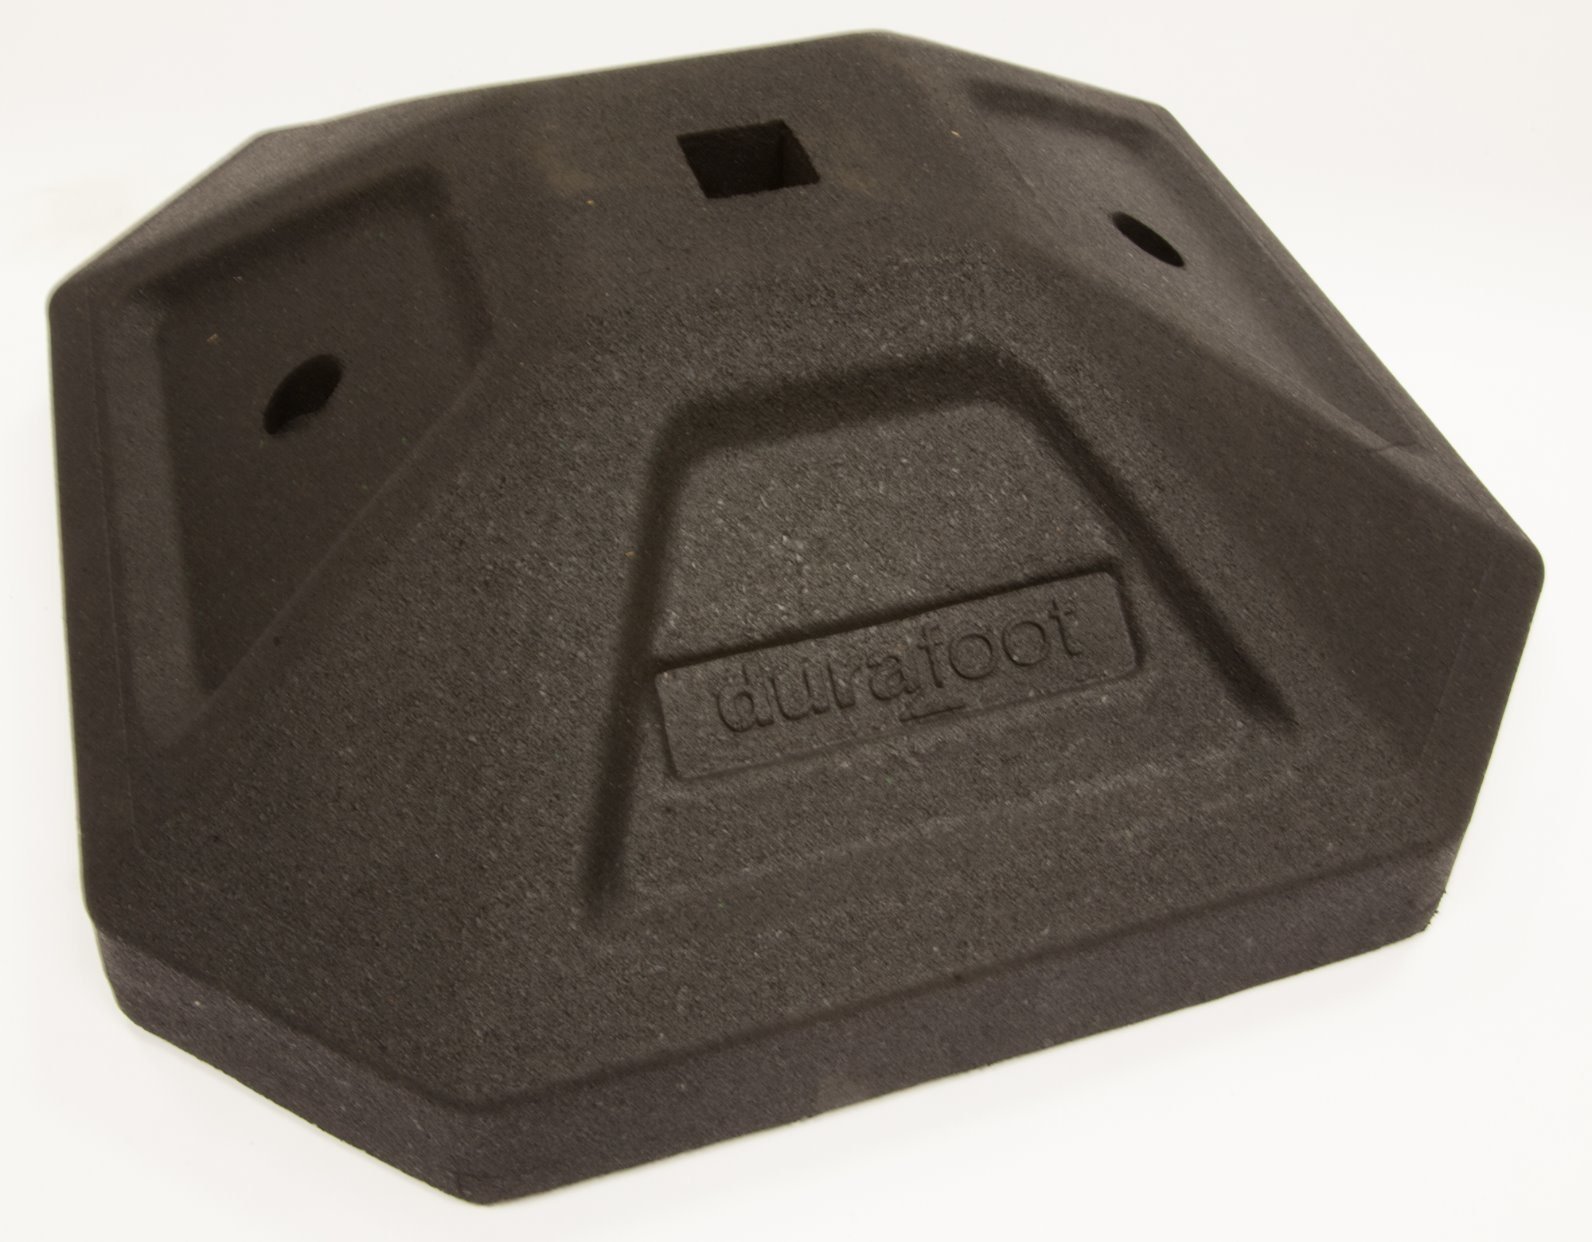 Durafoot 500 Square Foot (41X41) Heavy 25kg